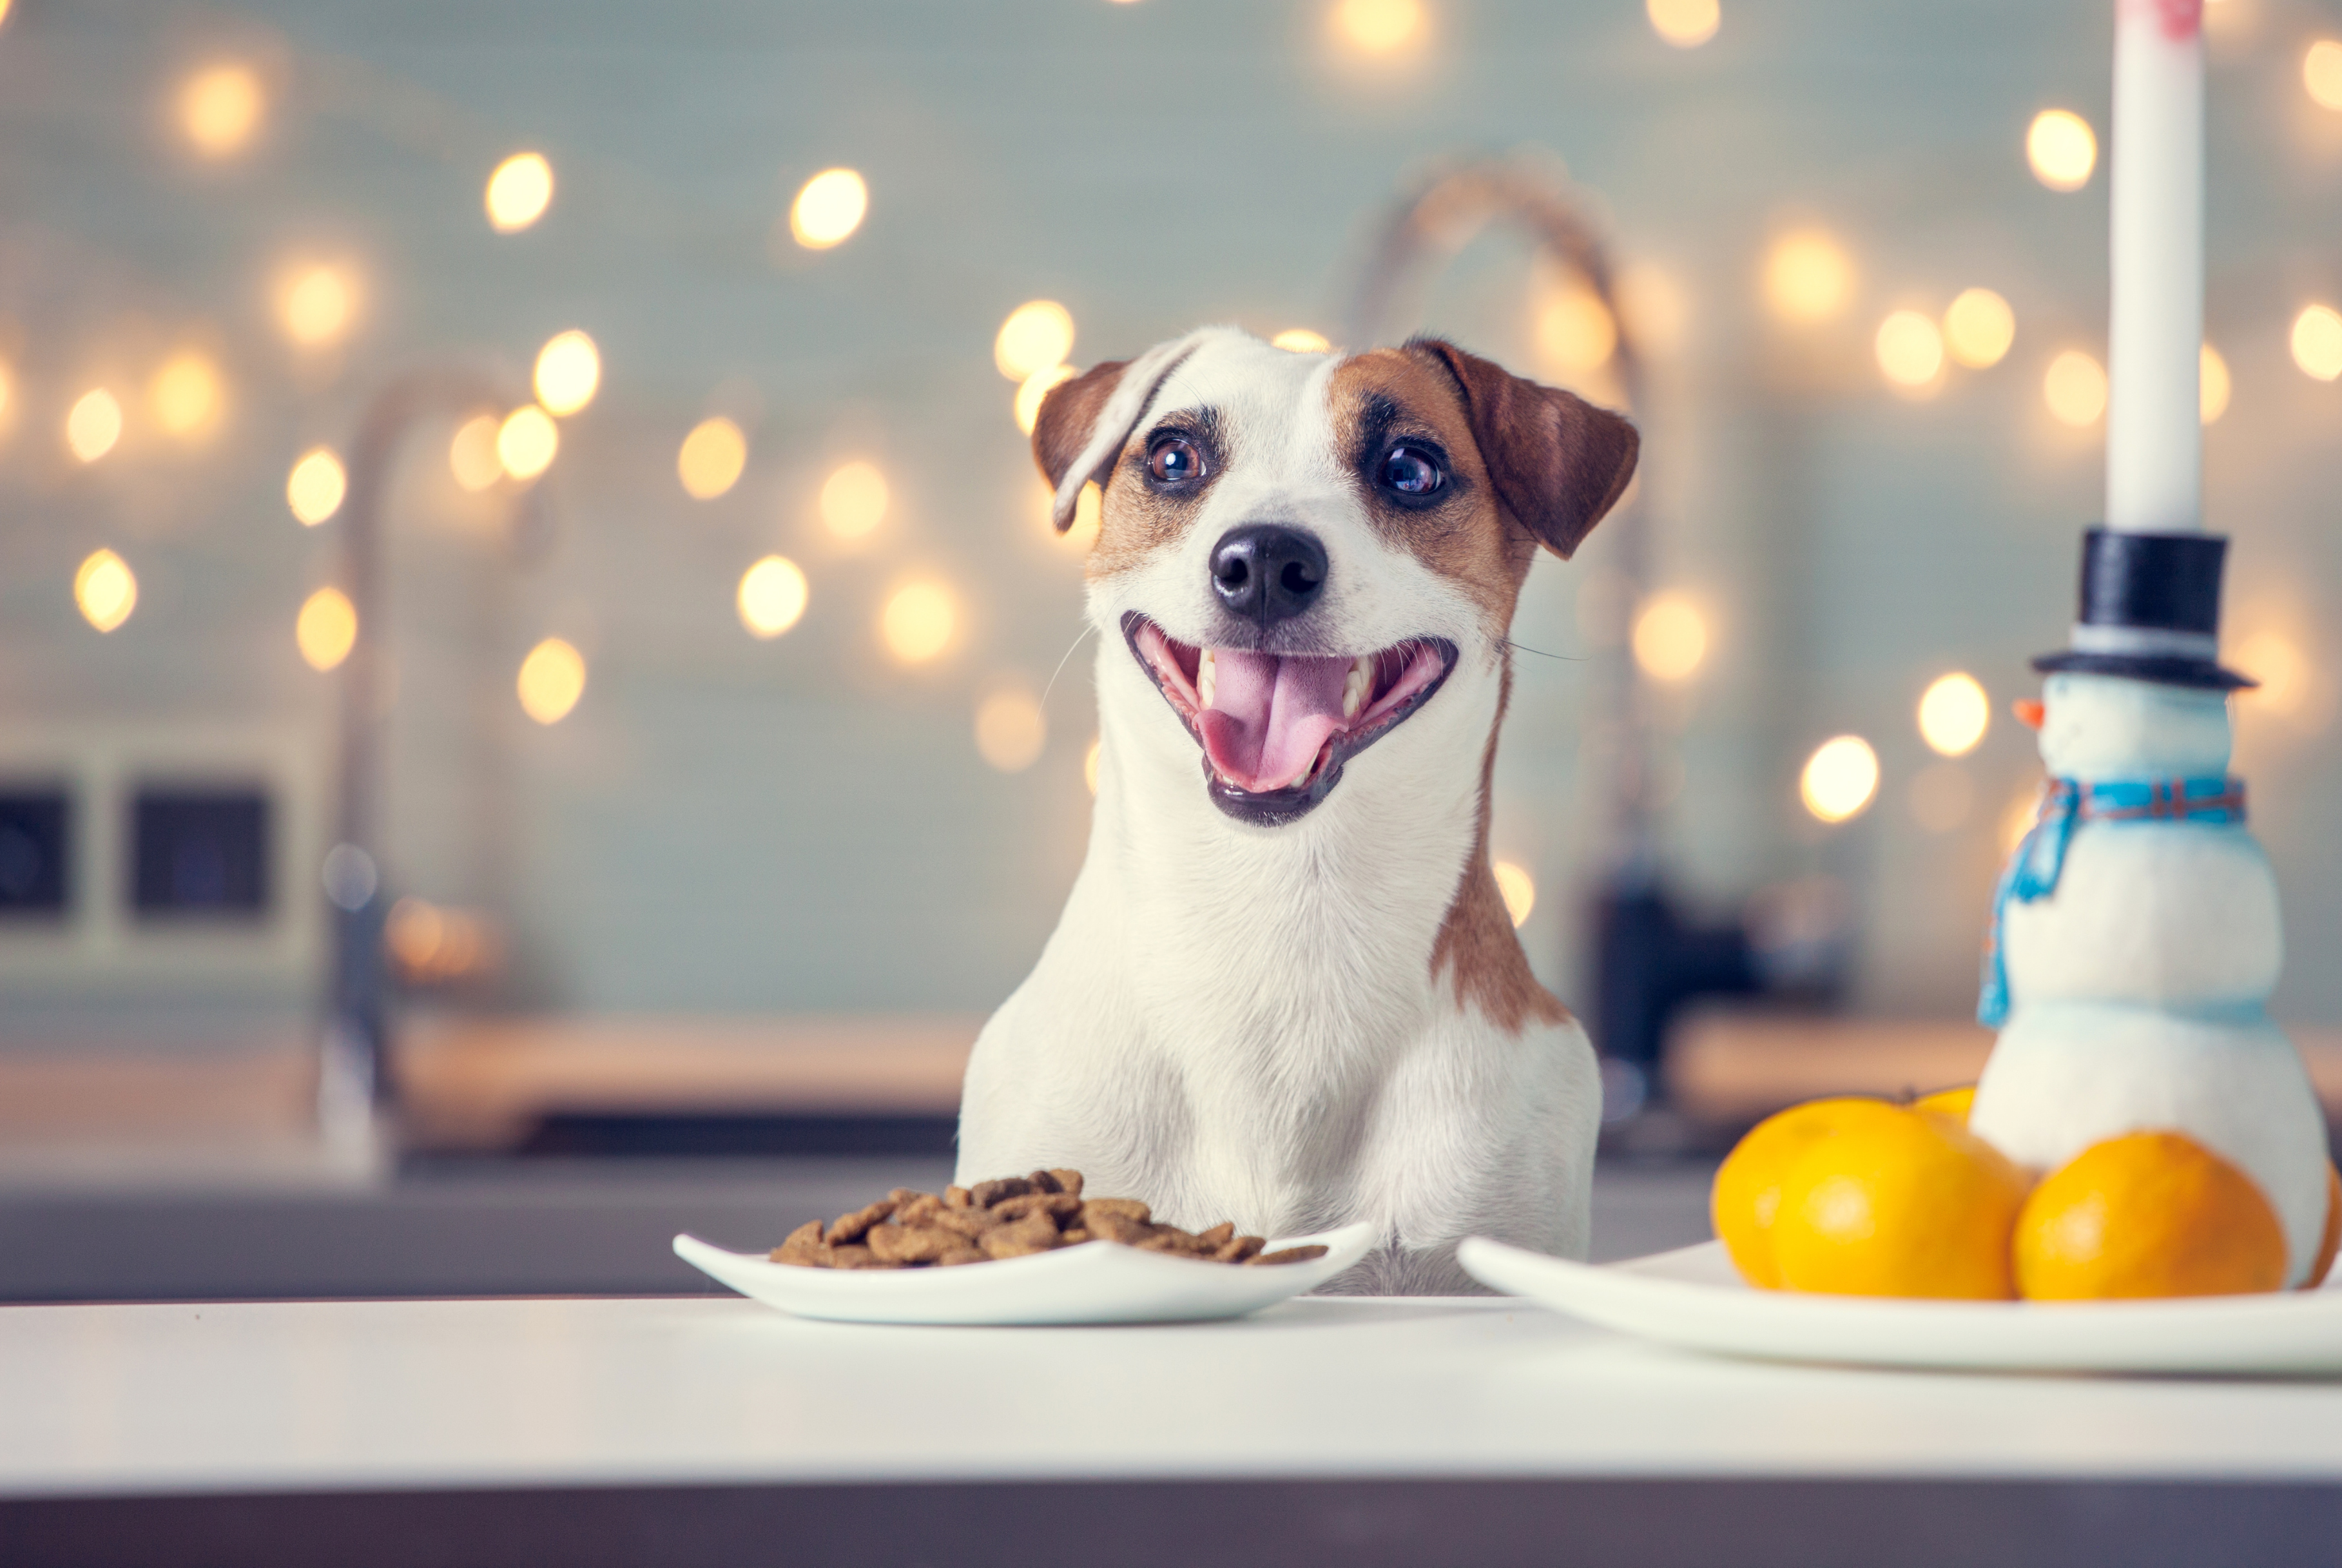 white and brown medium sized short hair dog sitting at table with food and a bowl of oranges